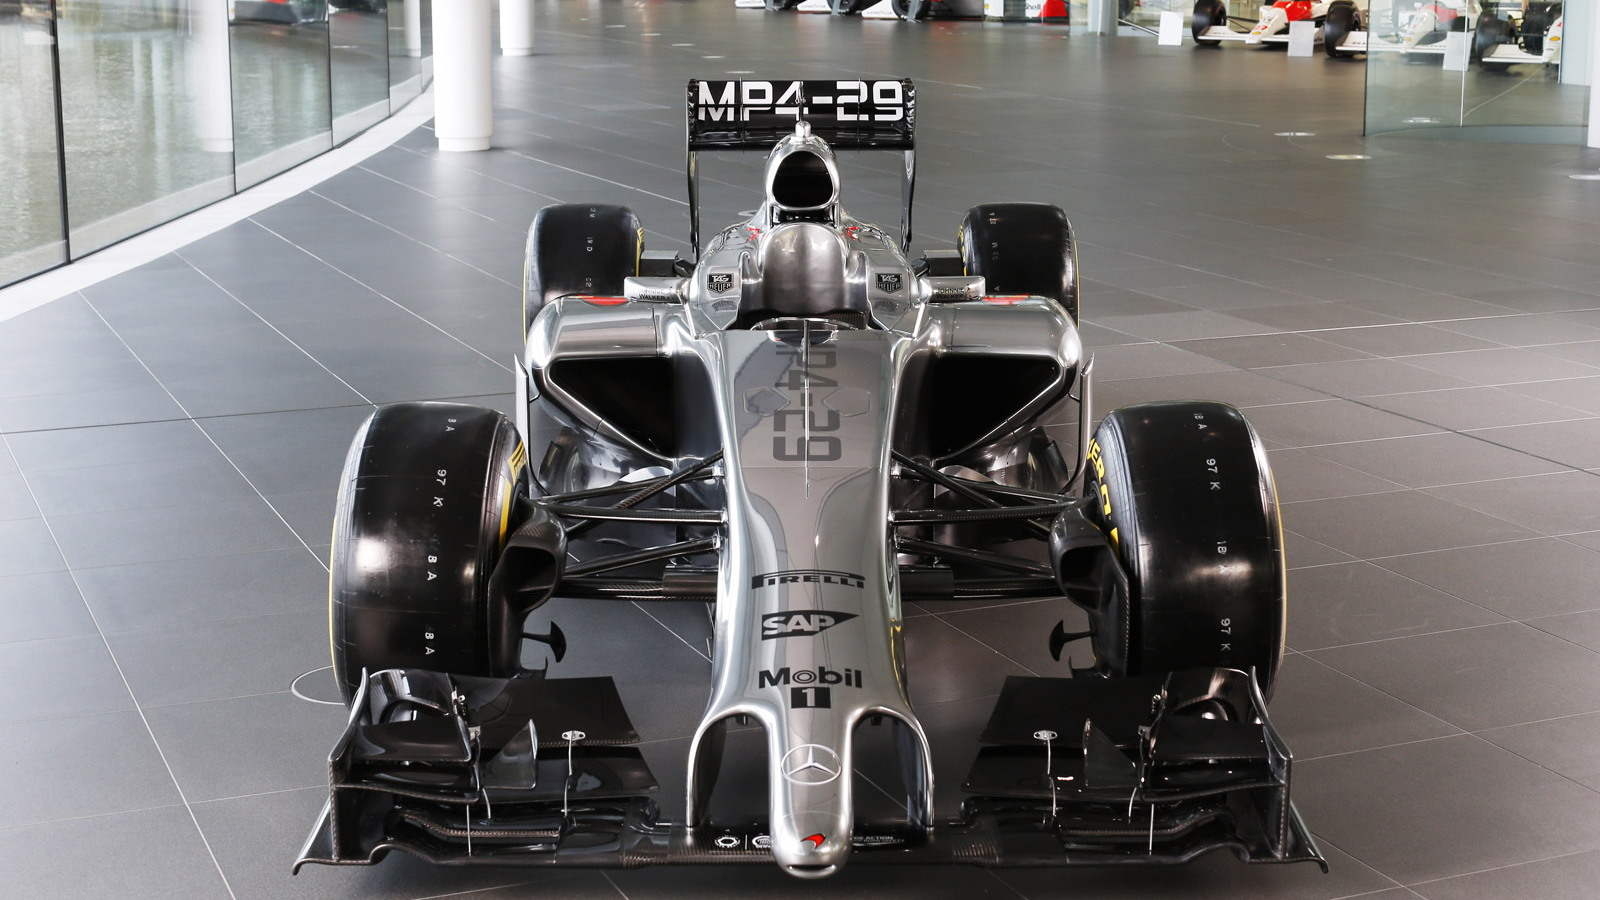 McLaren's MP4-29 2014 Formula One car